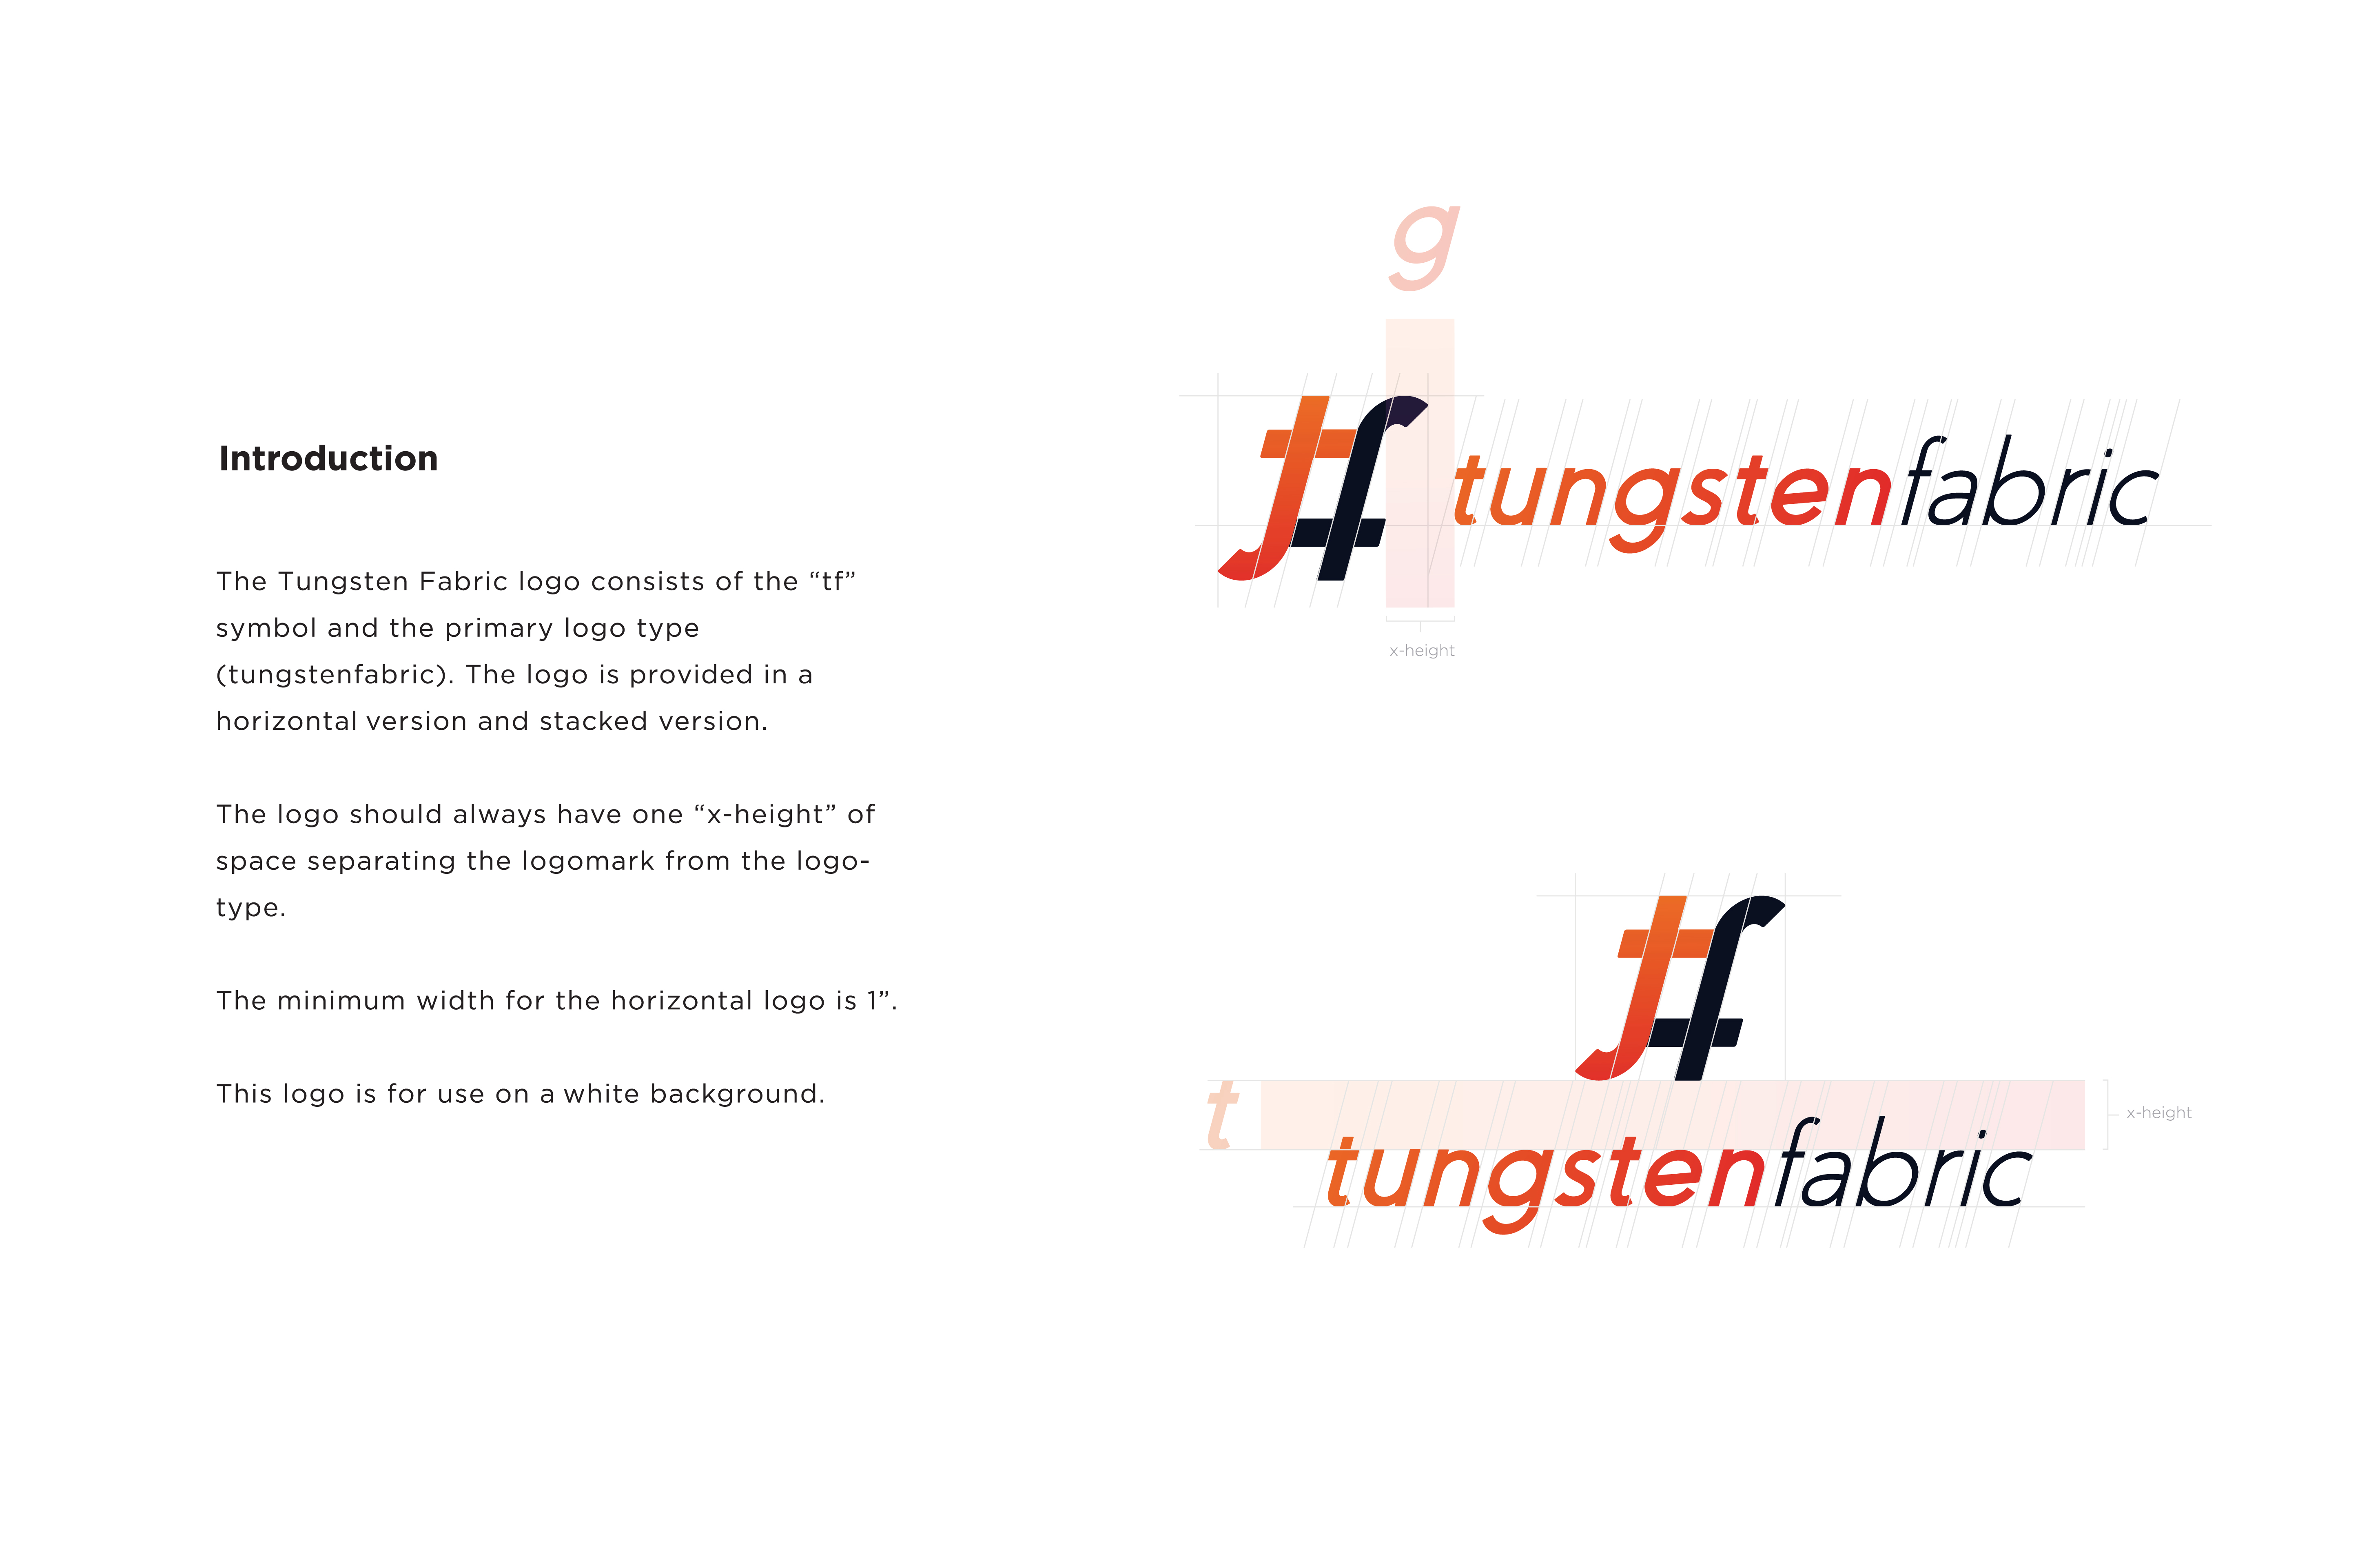 Tungsten Fabric Logo Introduction